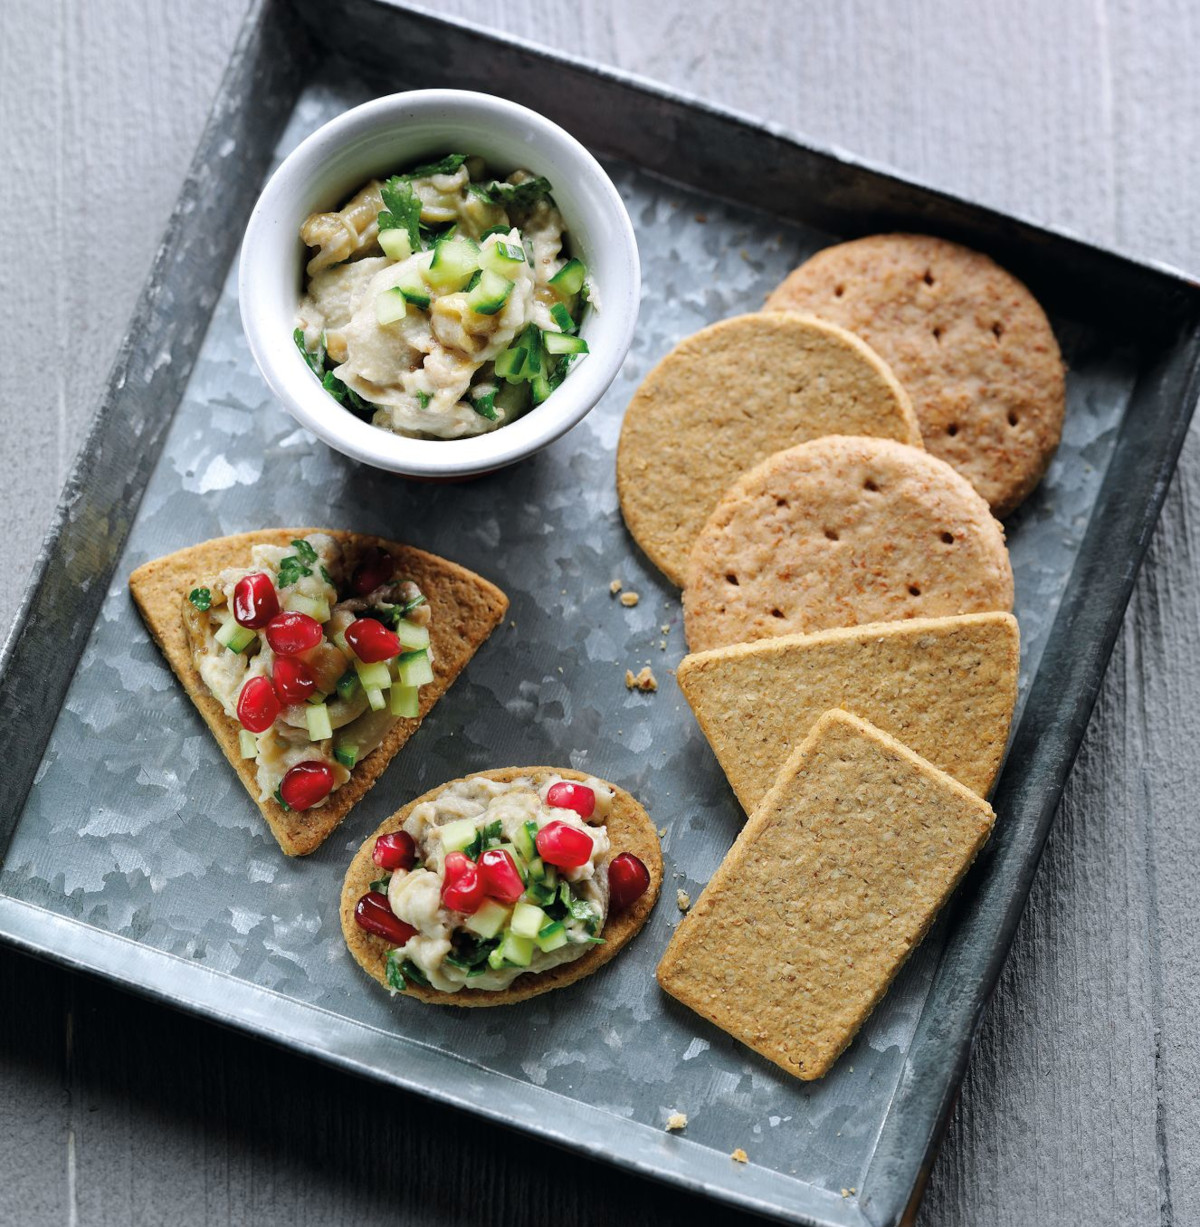 Blackened Eggplant, Tahini & Pomegranate Oat Crackers